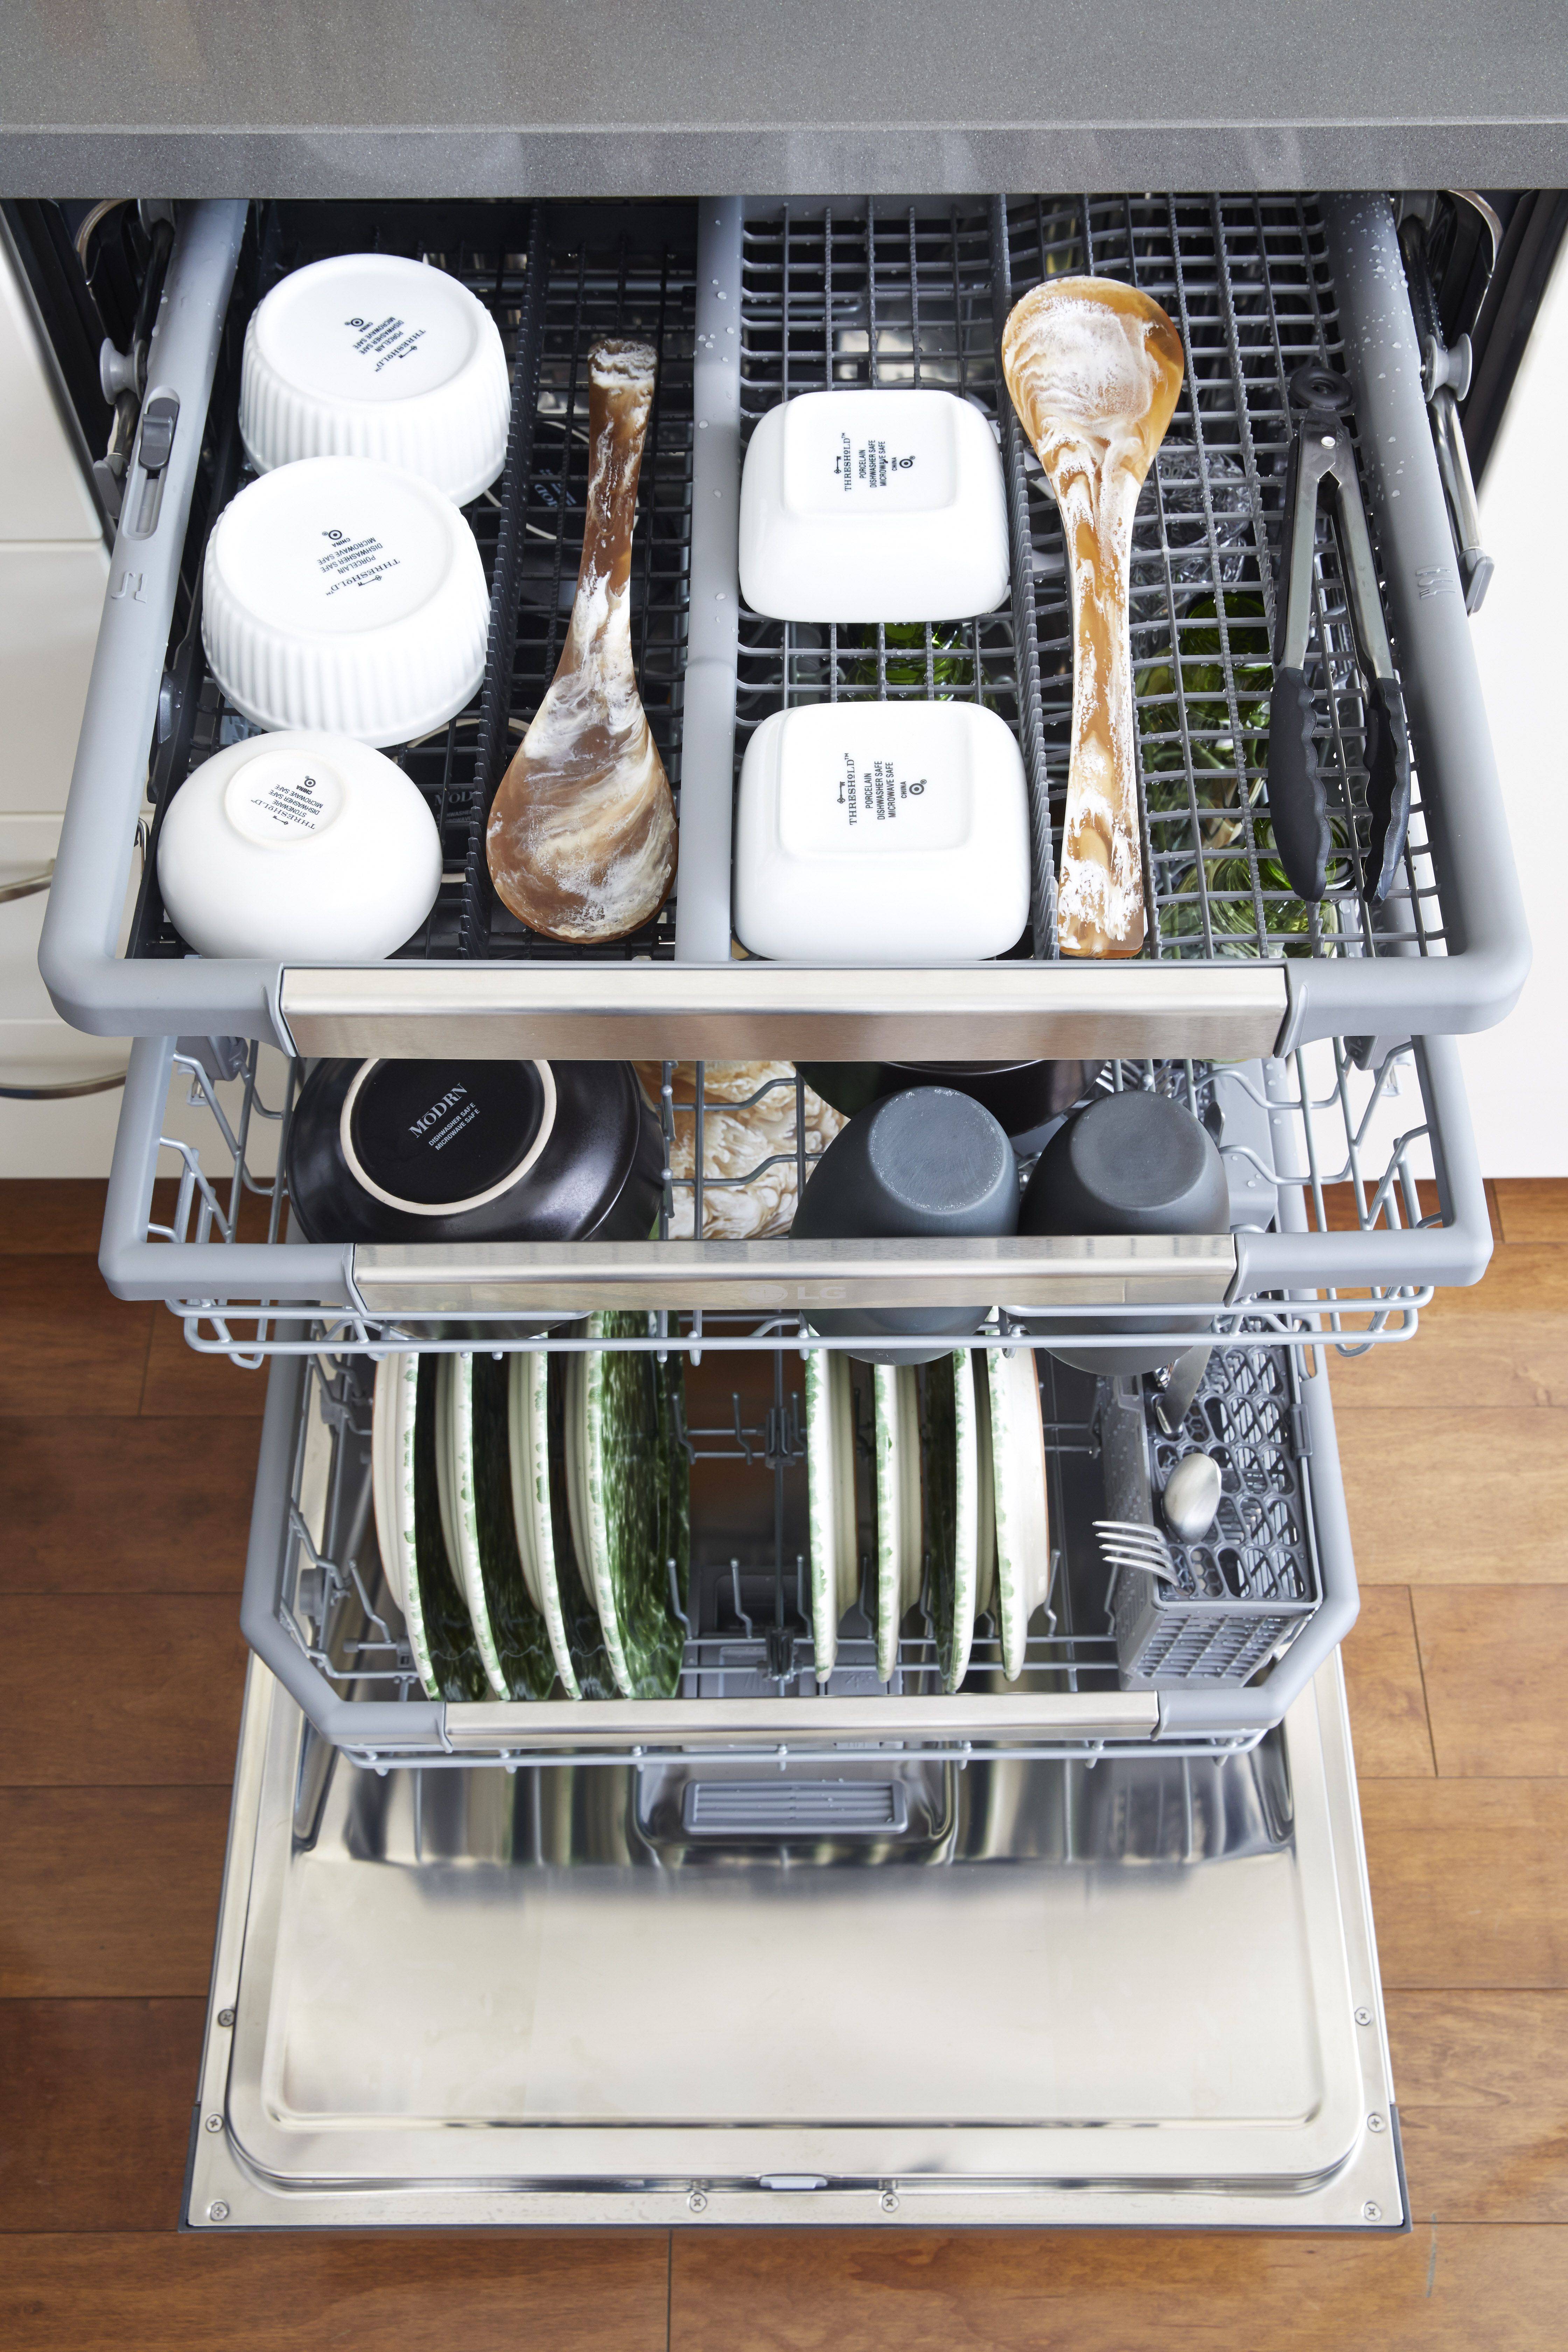 Lg Dishwasher Dishwasher Lg Dishwashers Cleaning Dishes